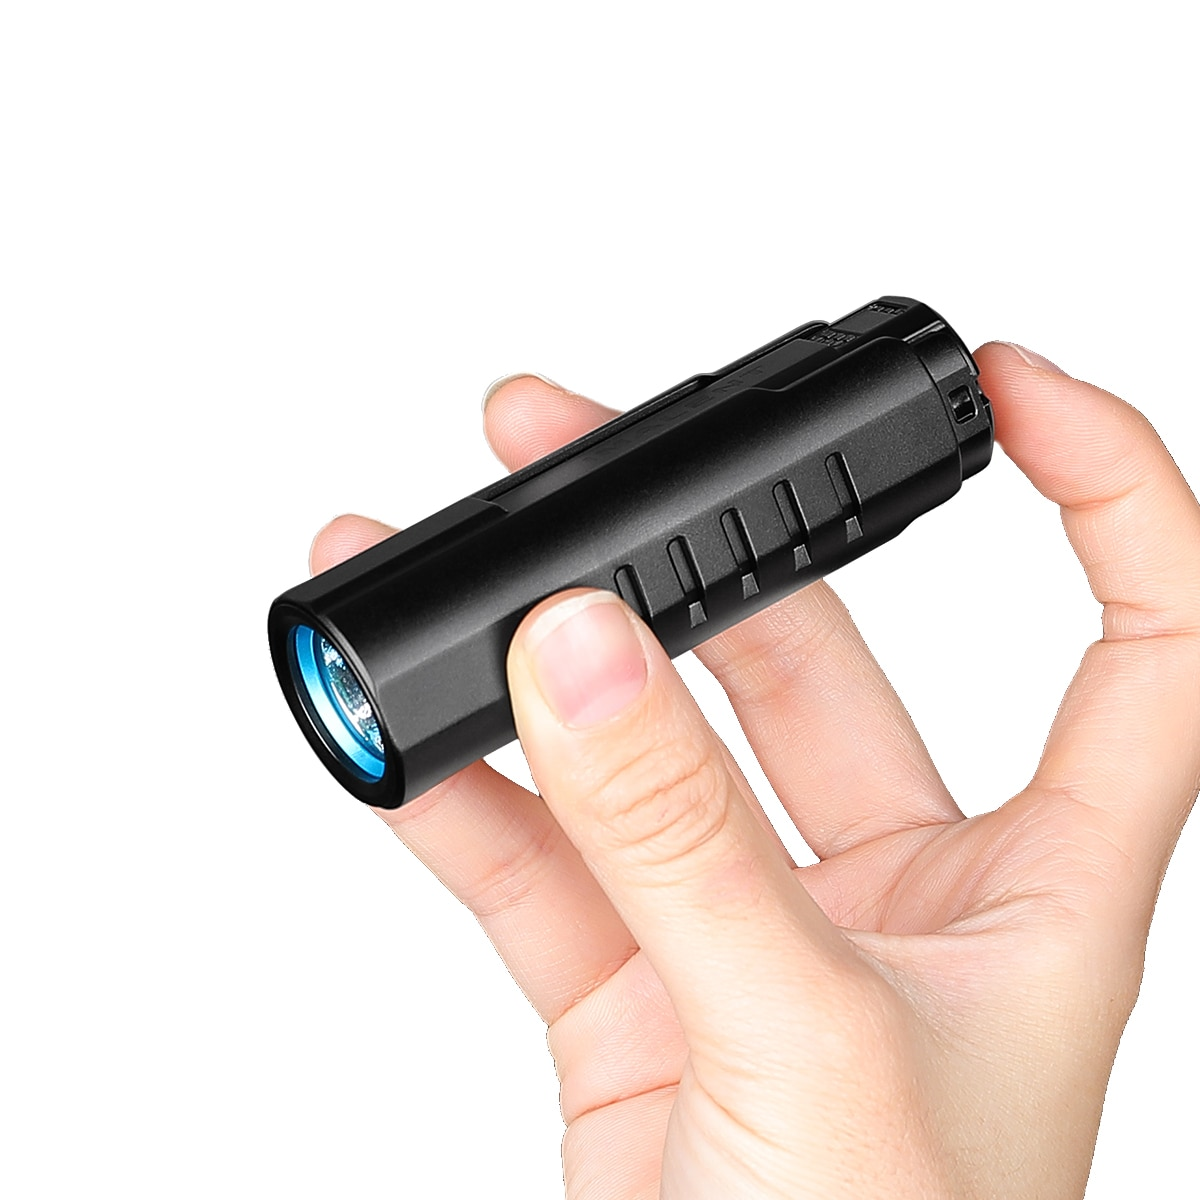 IMALENT LD70 Flashlight Powerful 4000Lumens 18350 Battery Outdoor Lighting Self-defense USB Rechargeable Mini LED Portable Torch enlarge